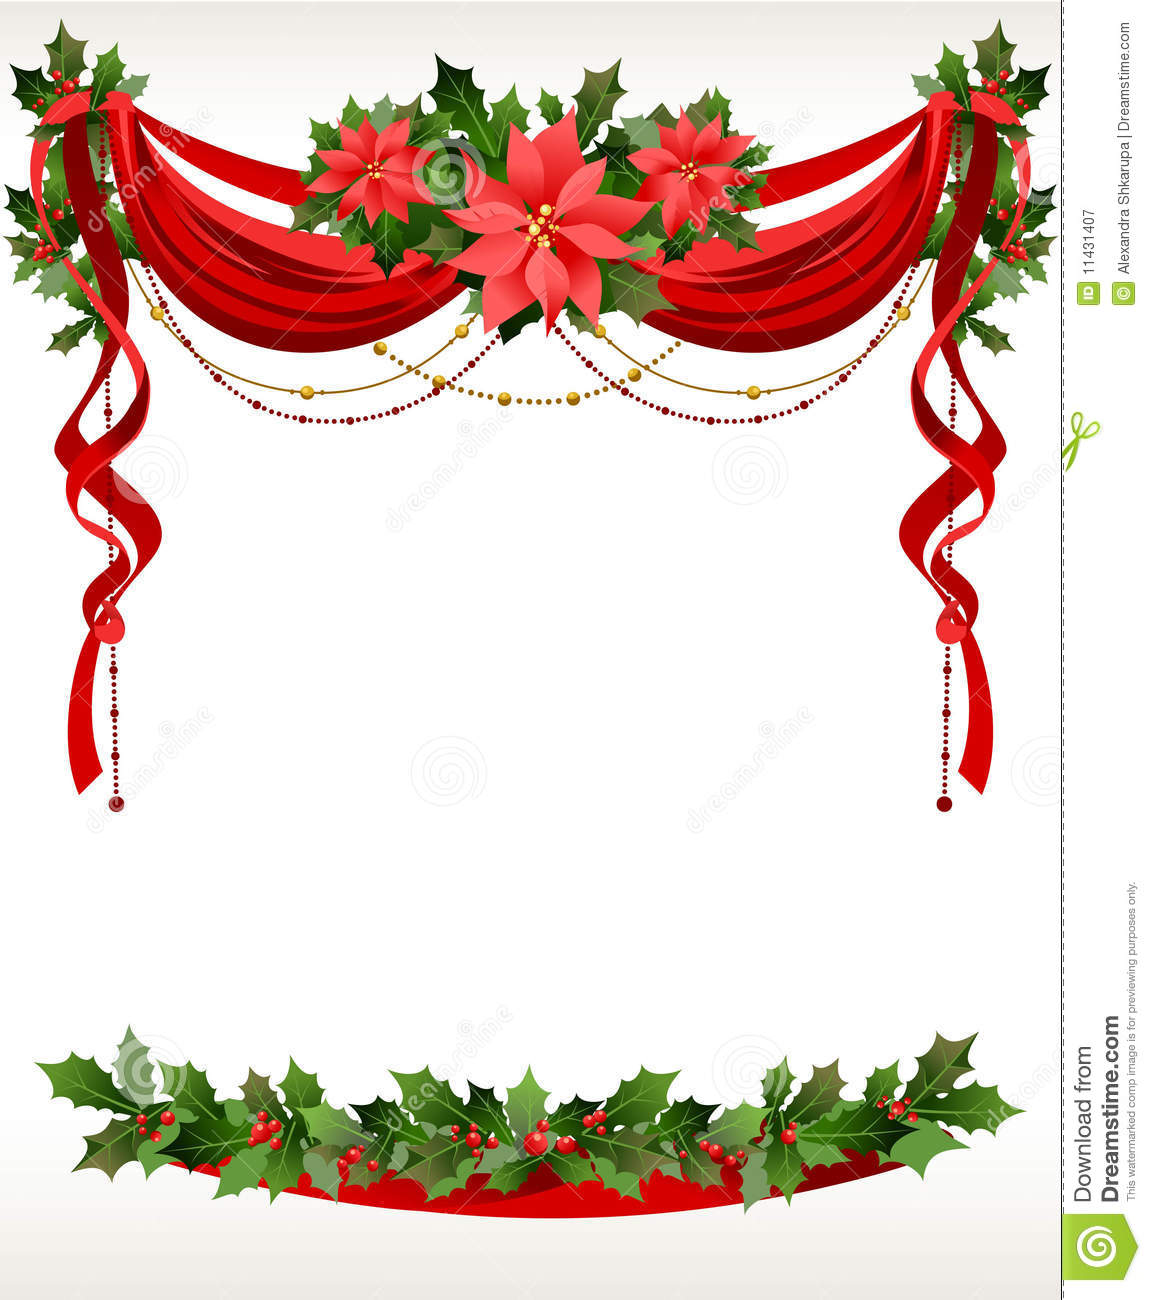 Frees for word christmas borders. Free download best